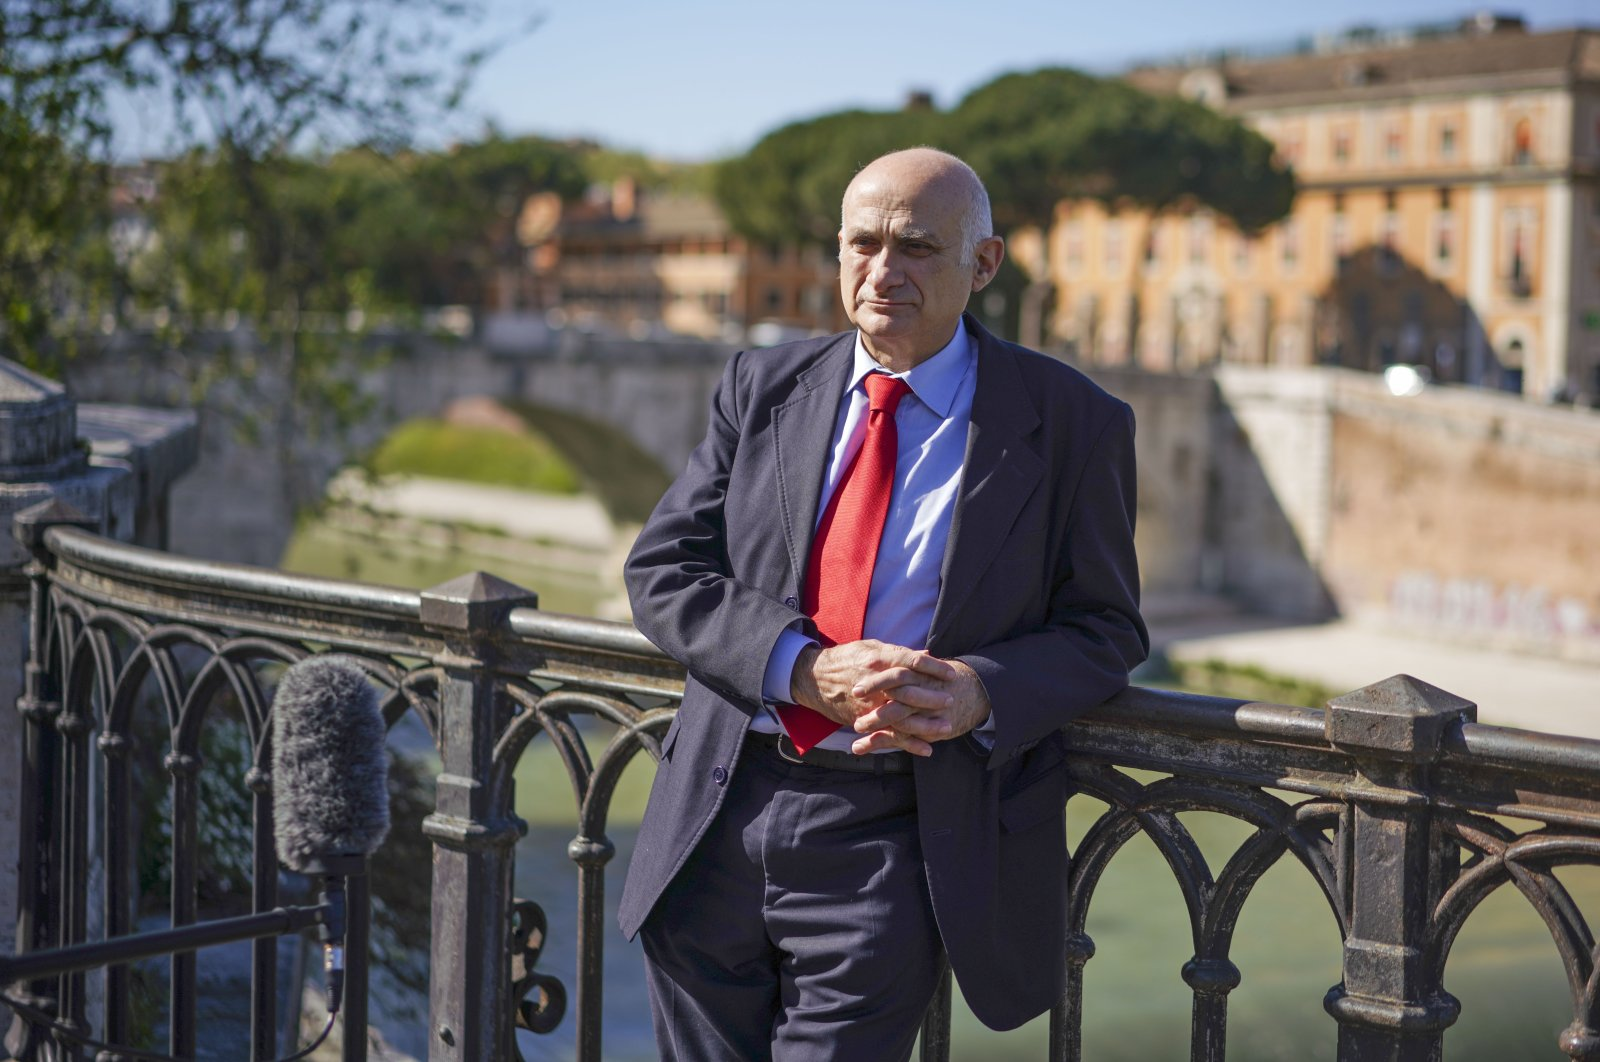 Spallanzani Hospital's scientific director, Giuseppe Ippolito, talks during an interview with The Associated Press, Rome, April 15, 2020. (AP Photo)